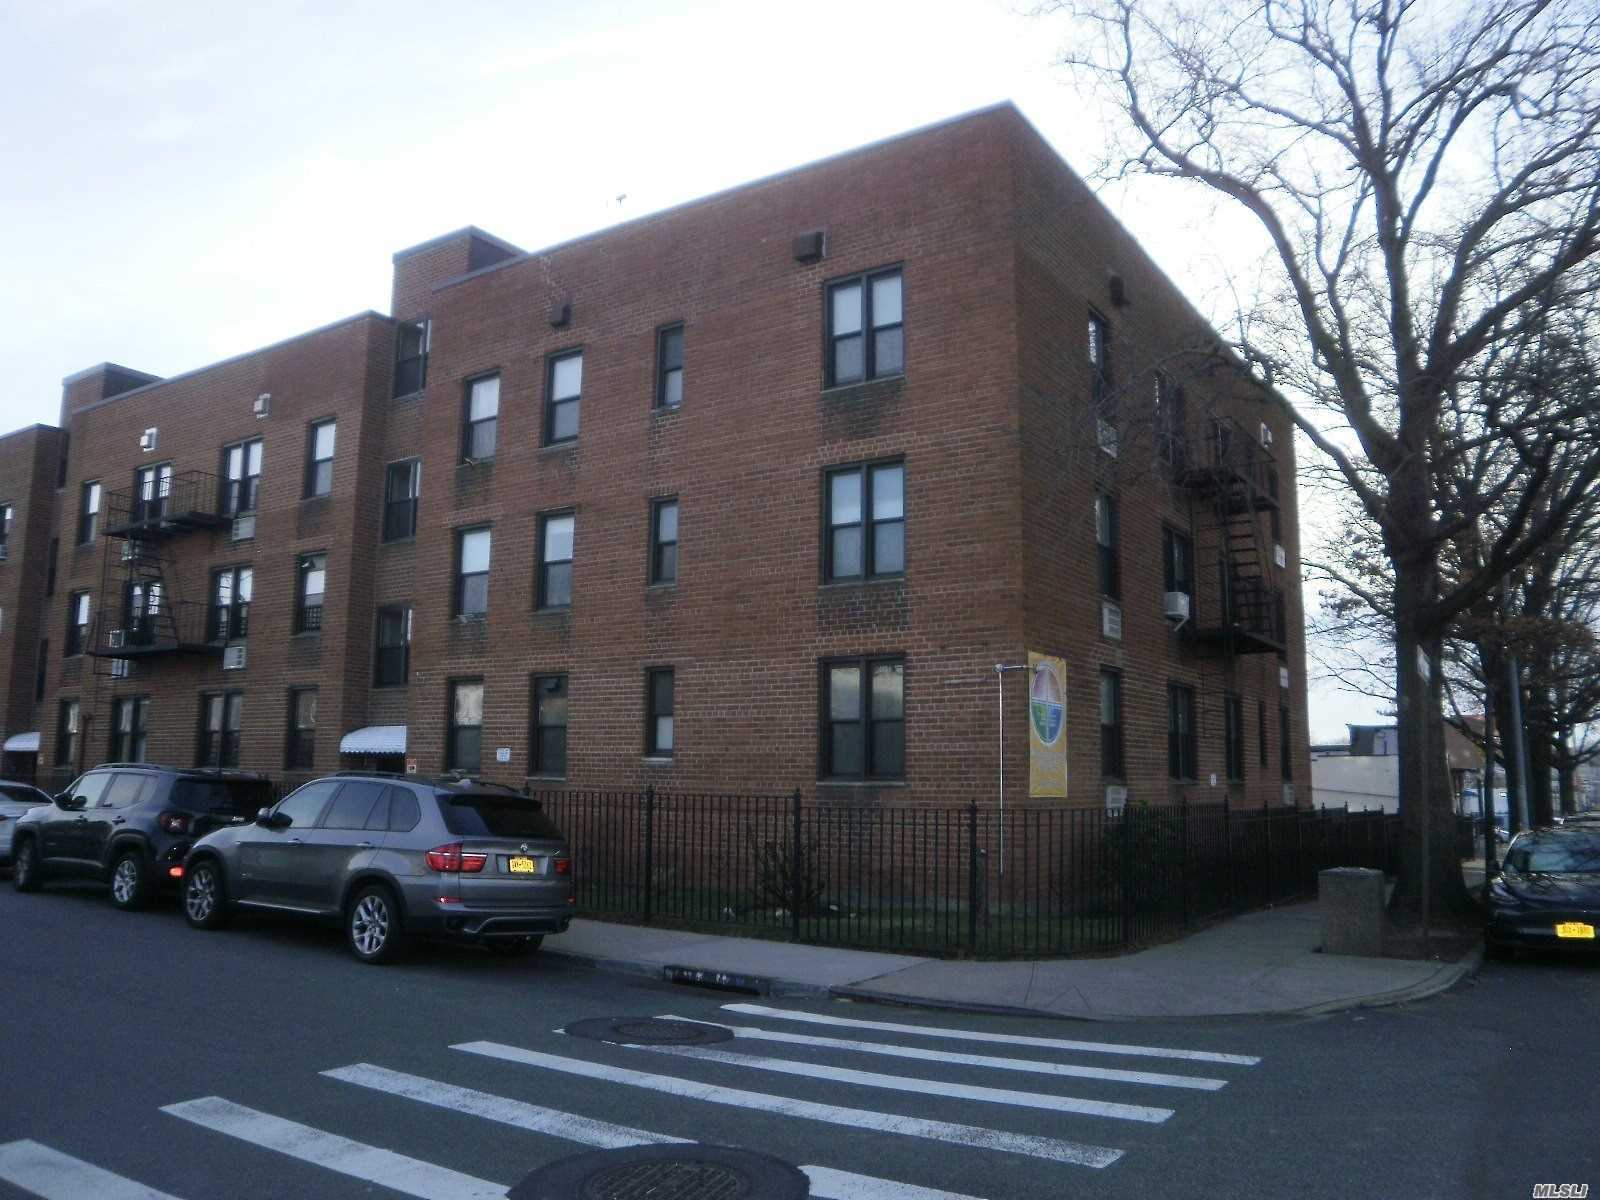 Newly Renovated 2 Bedroom Apt With Southern Exposure. Very Bright And Spacious. Laundry Facilities In Basement. Close To Shopping, Public Transportation, And Great School District. Application Fee $300. Parking $100/Month, If Available.